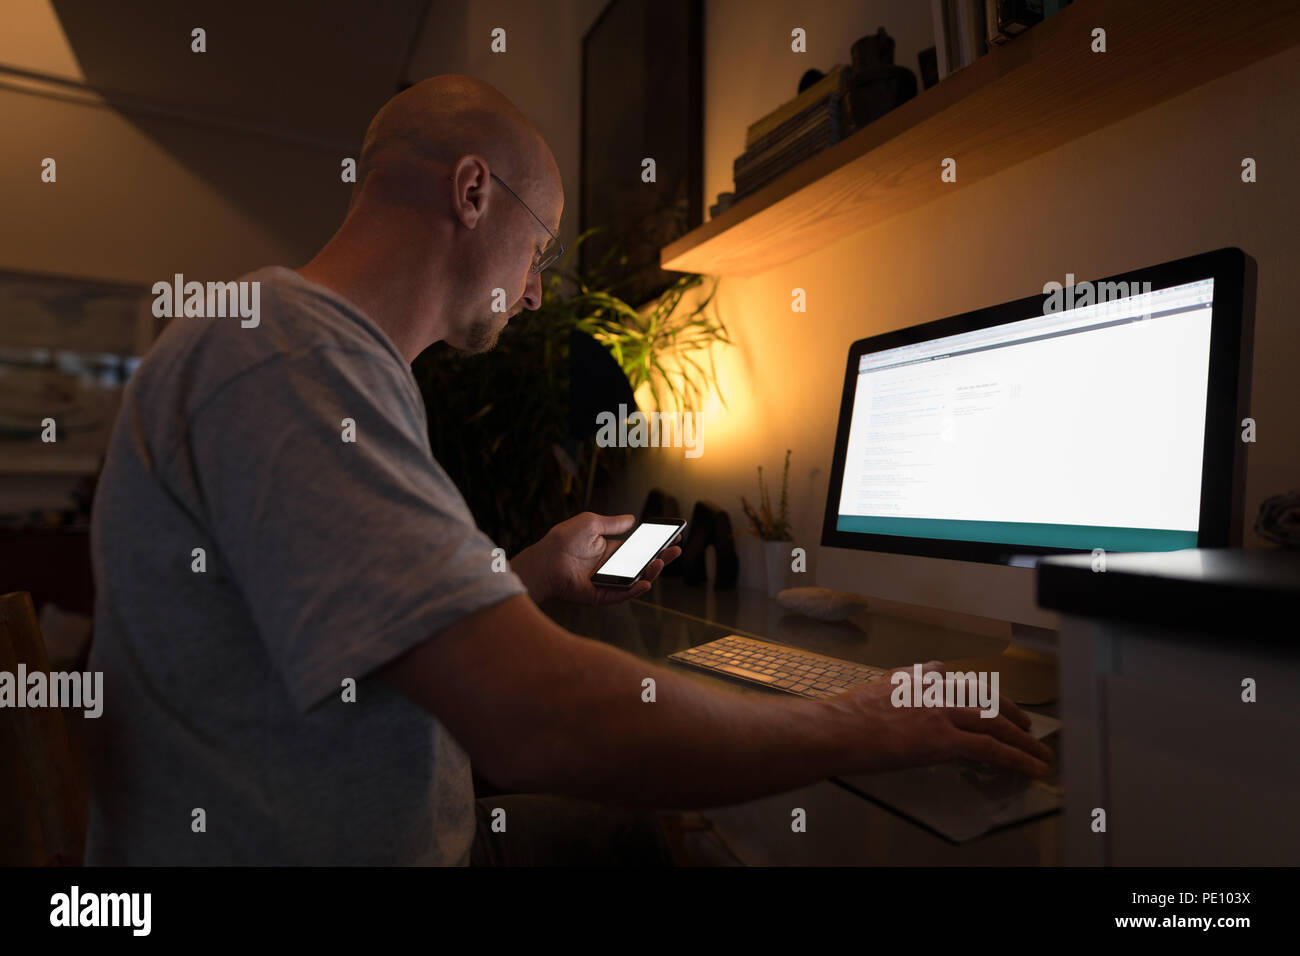 Man working on personal computer while using mobile phone - Stock Image